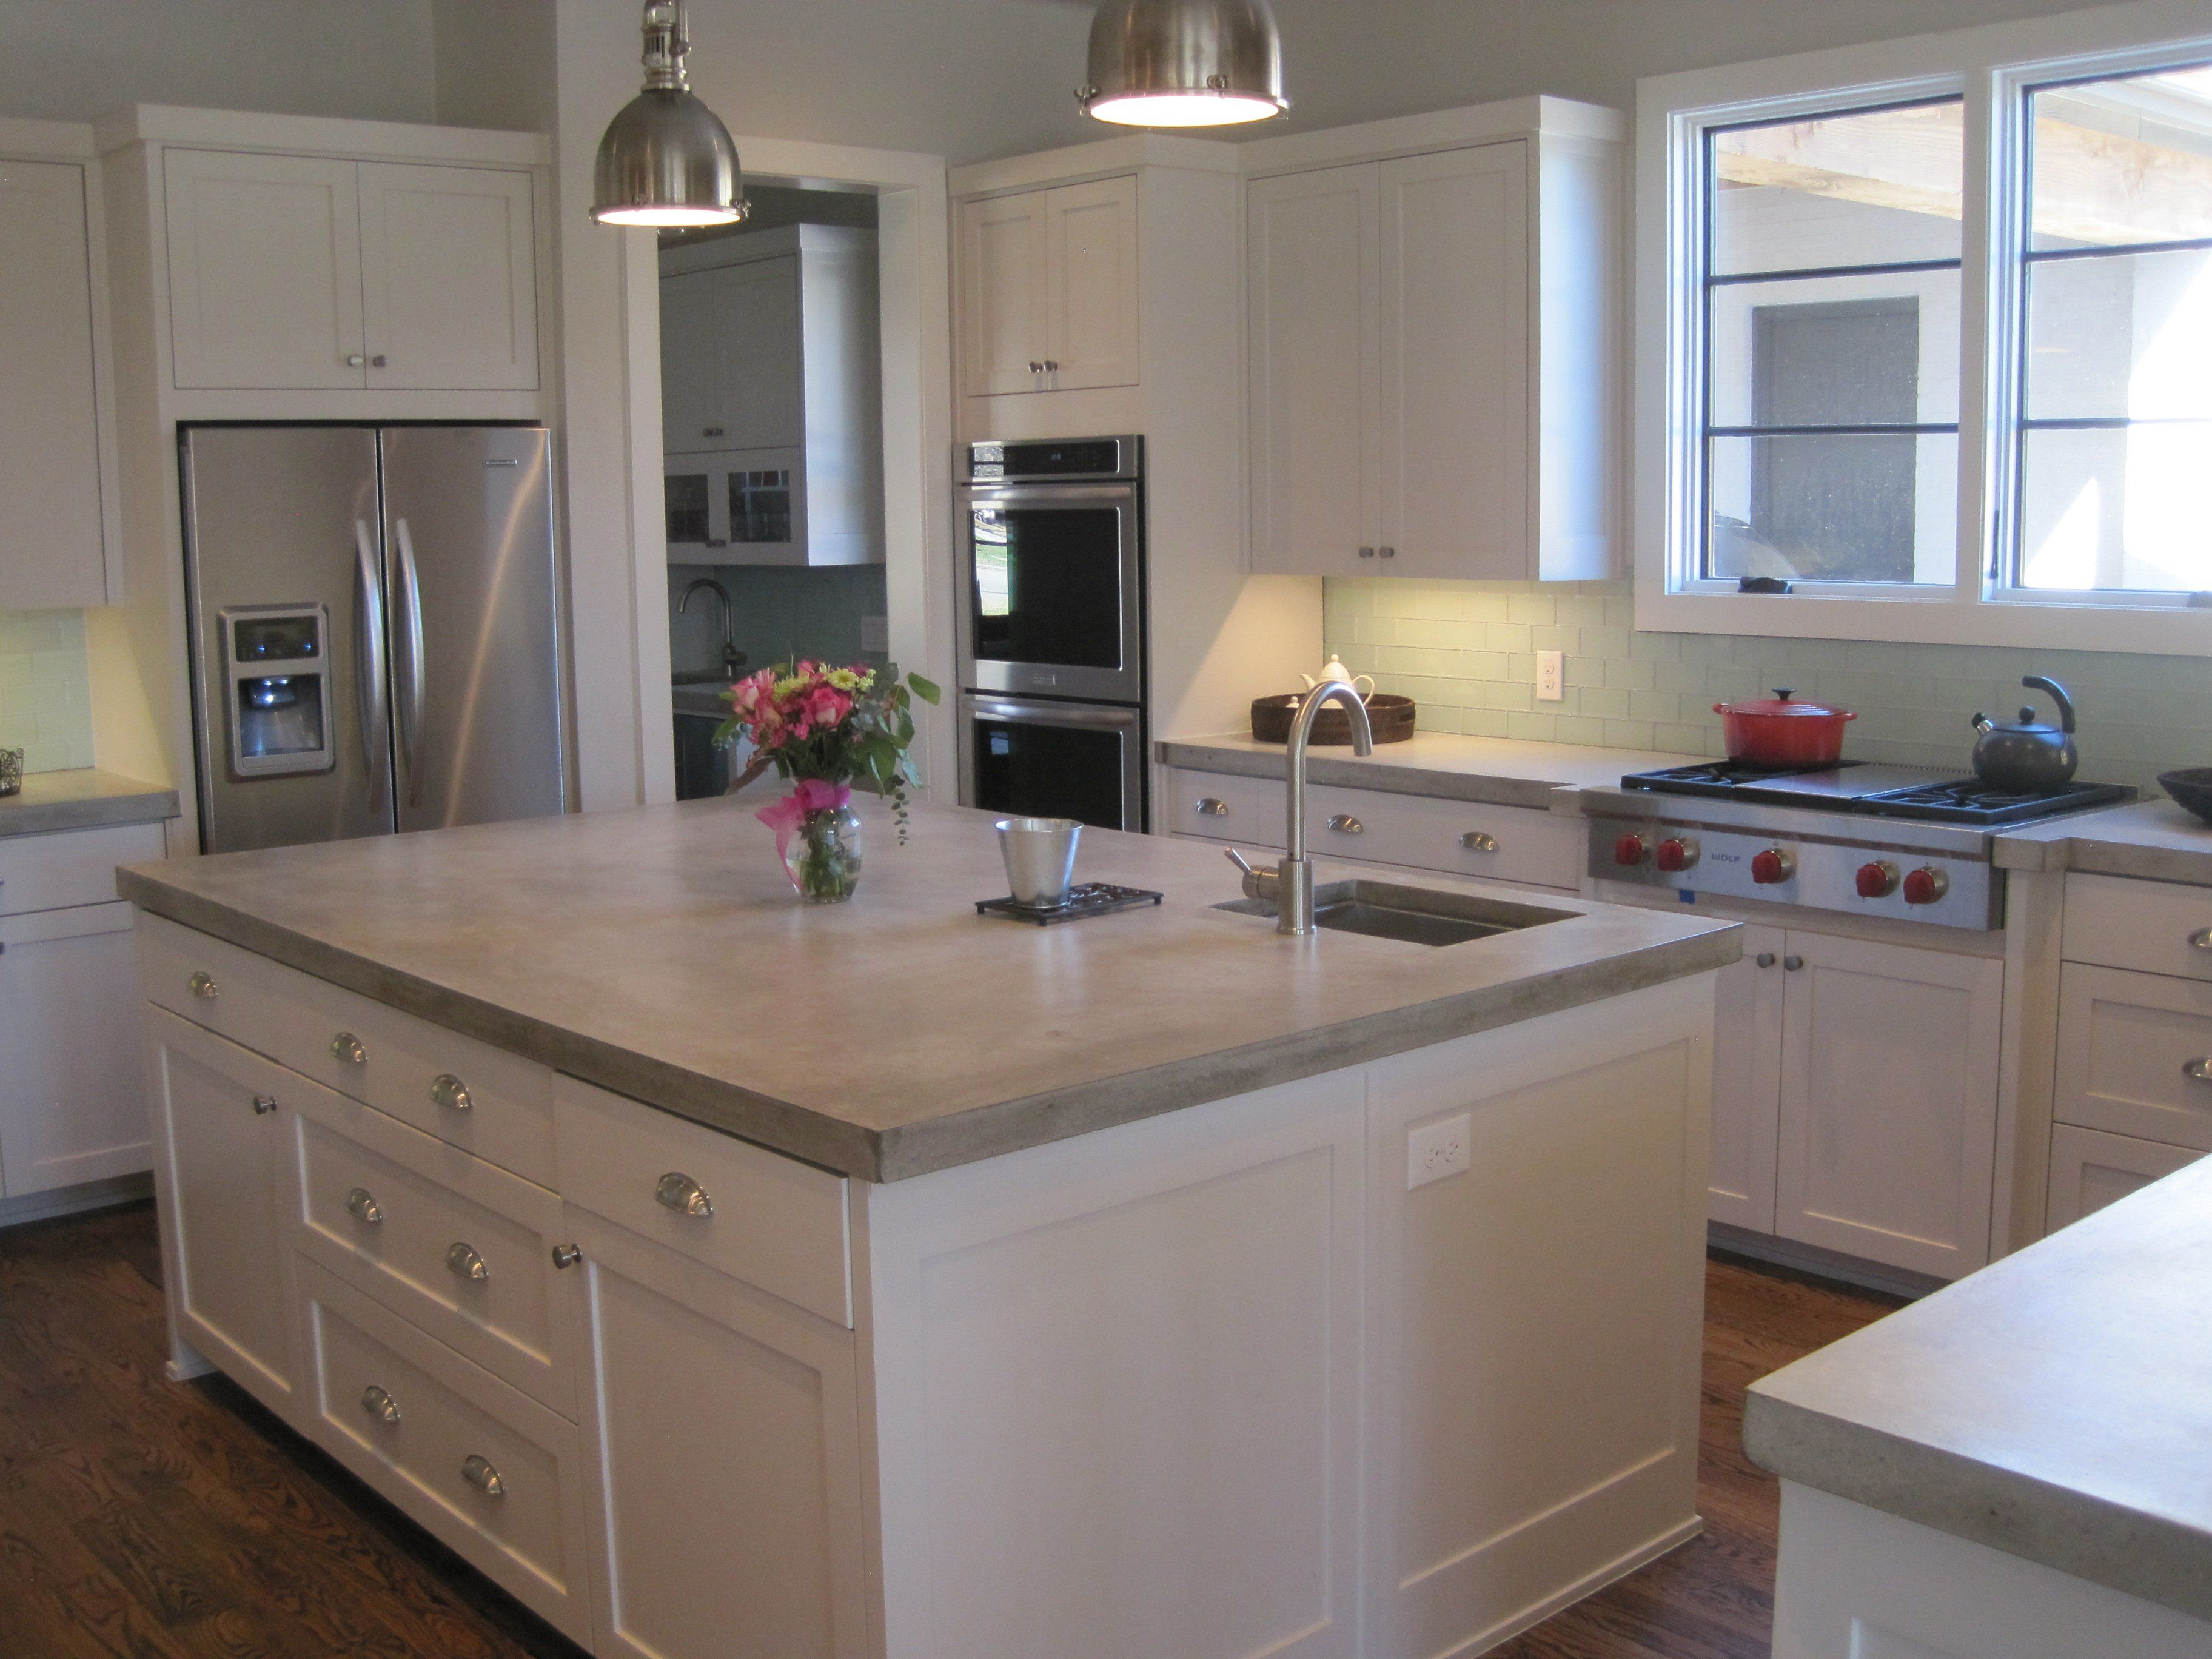 concrete kitchen countertops games free our house pinterest